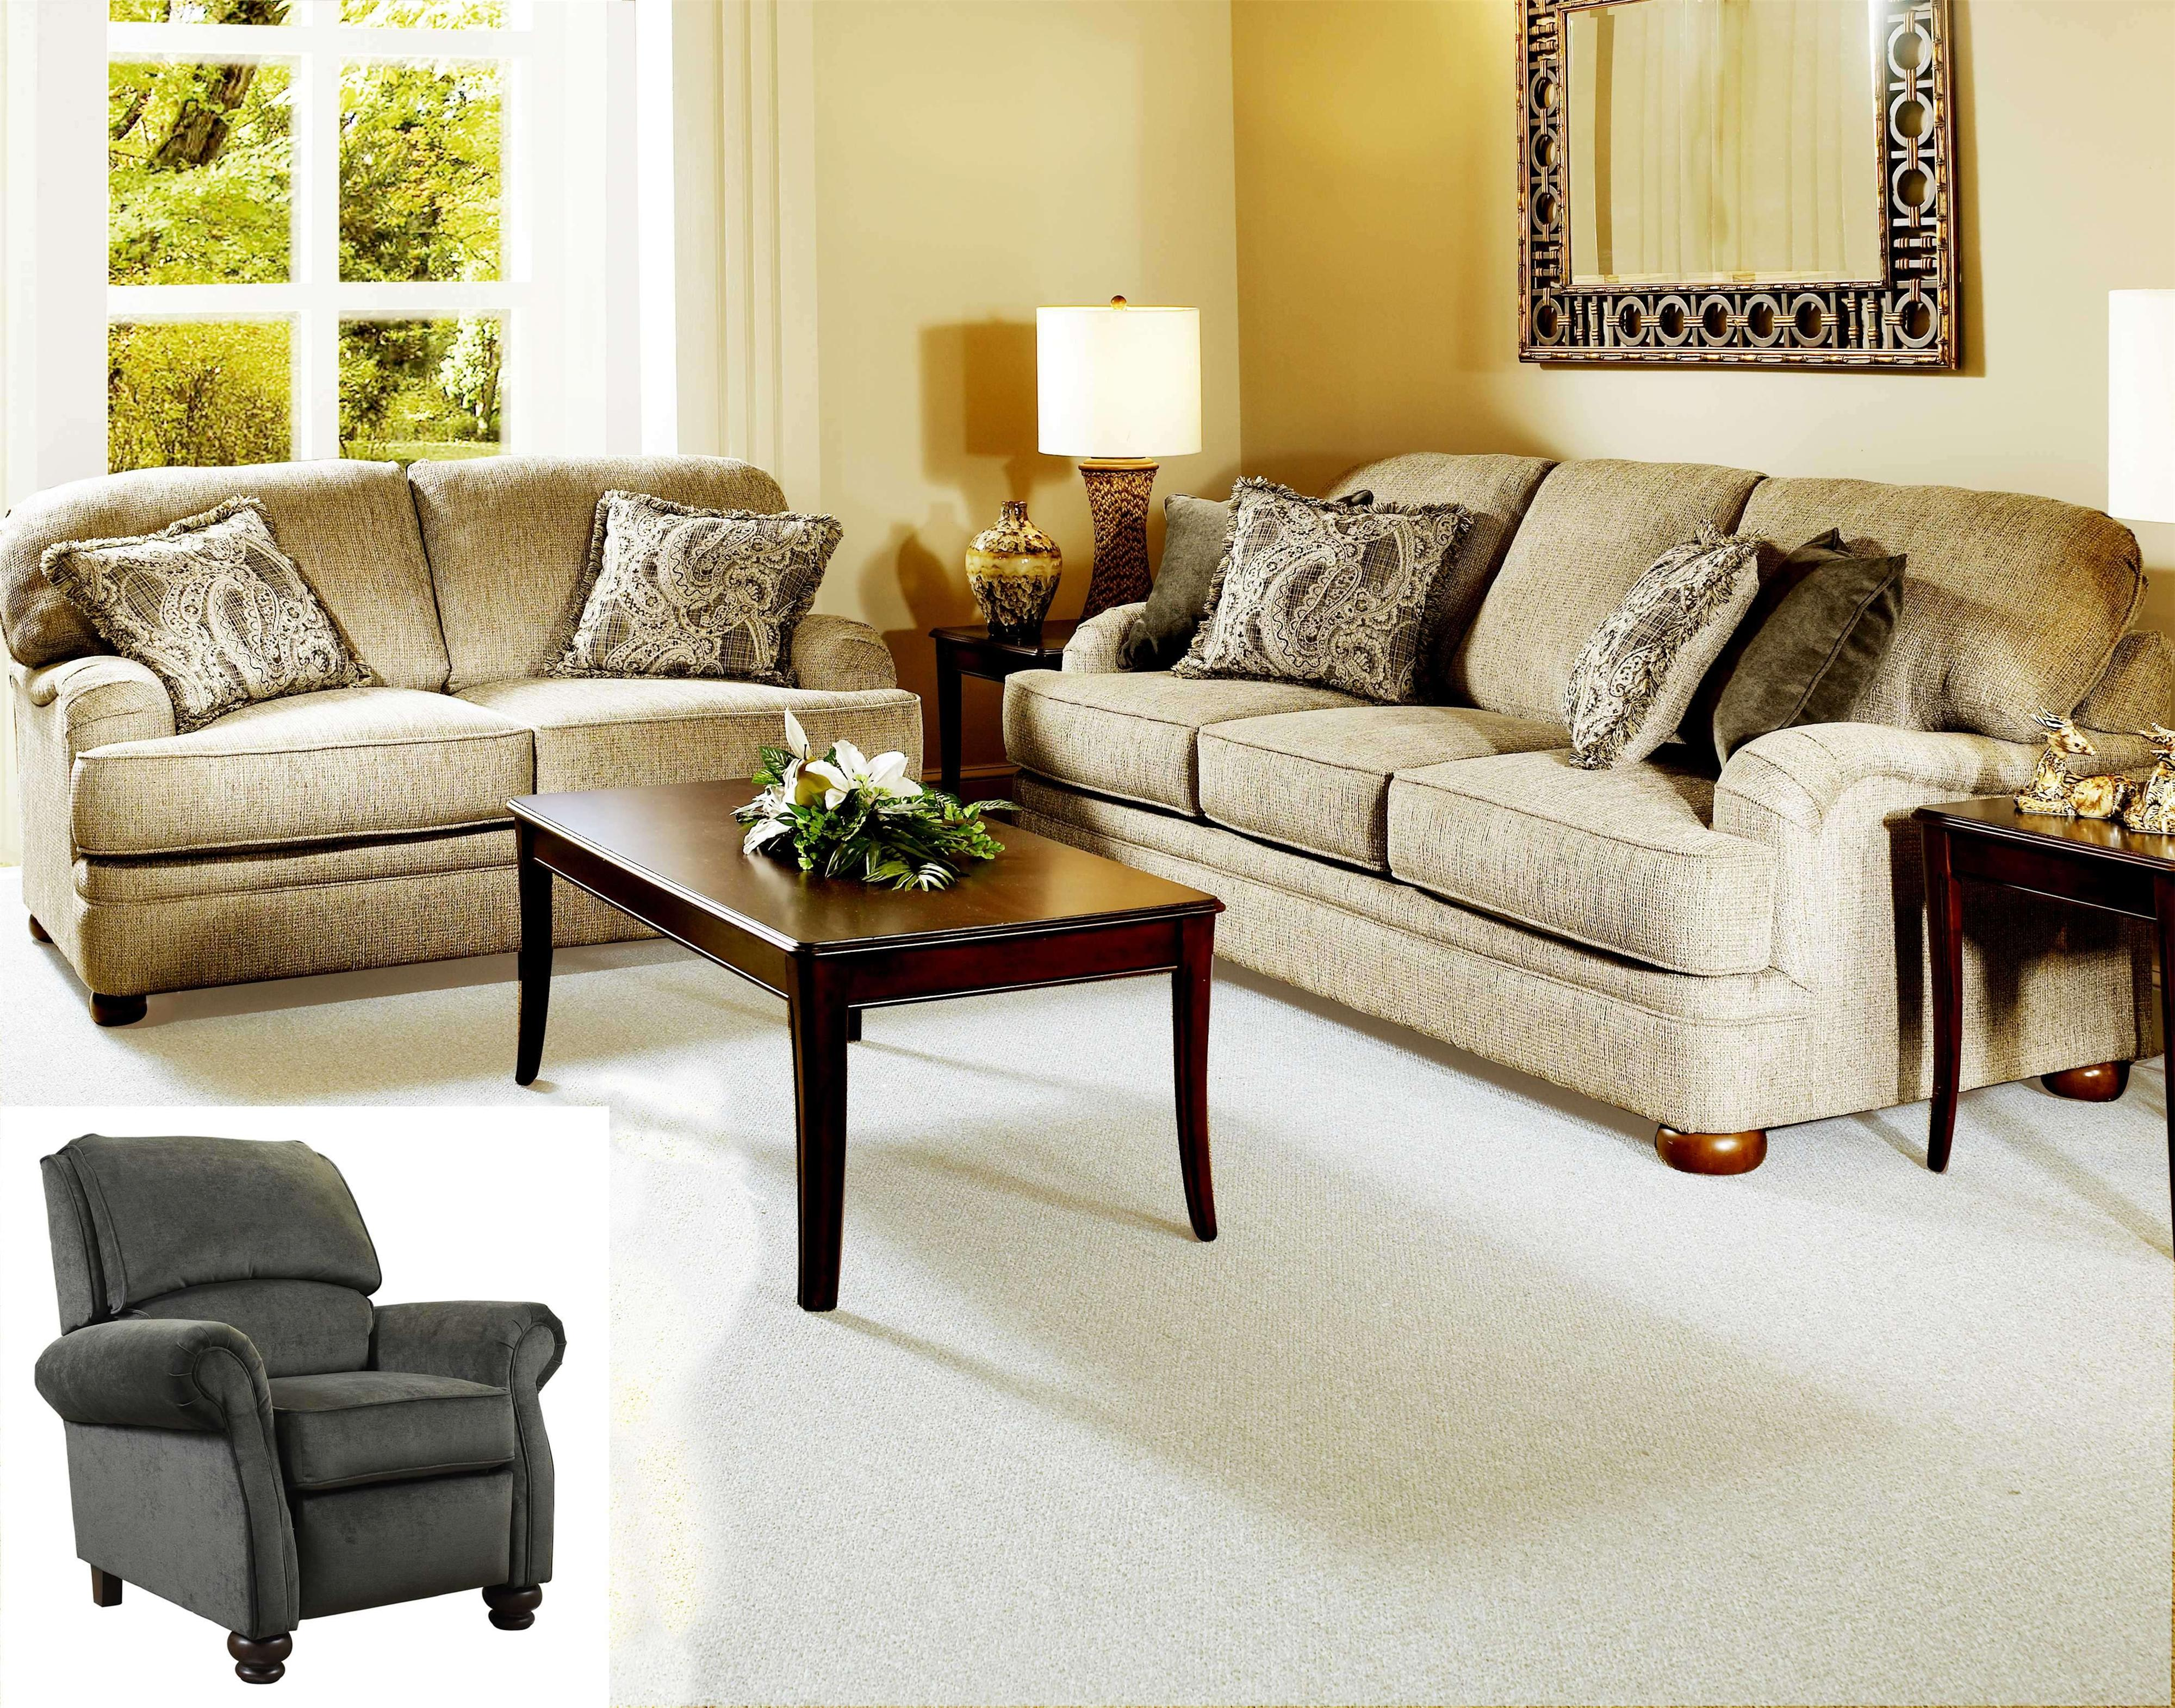 Serta sofa and loveseat serta soprano ebony sienna sofa and loveseat living room sets thesofa for Living room furniture trinidad